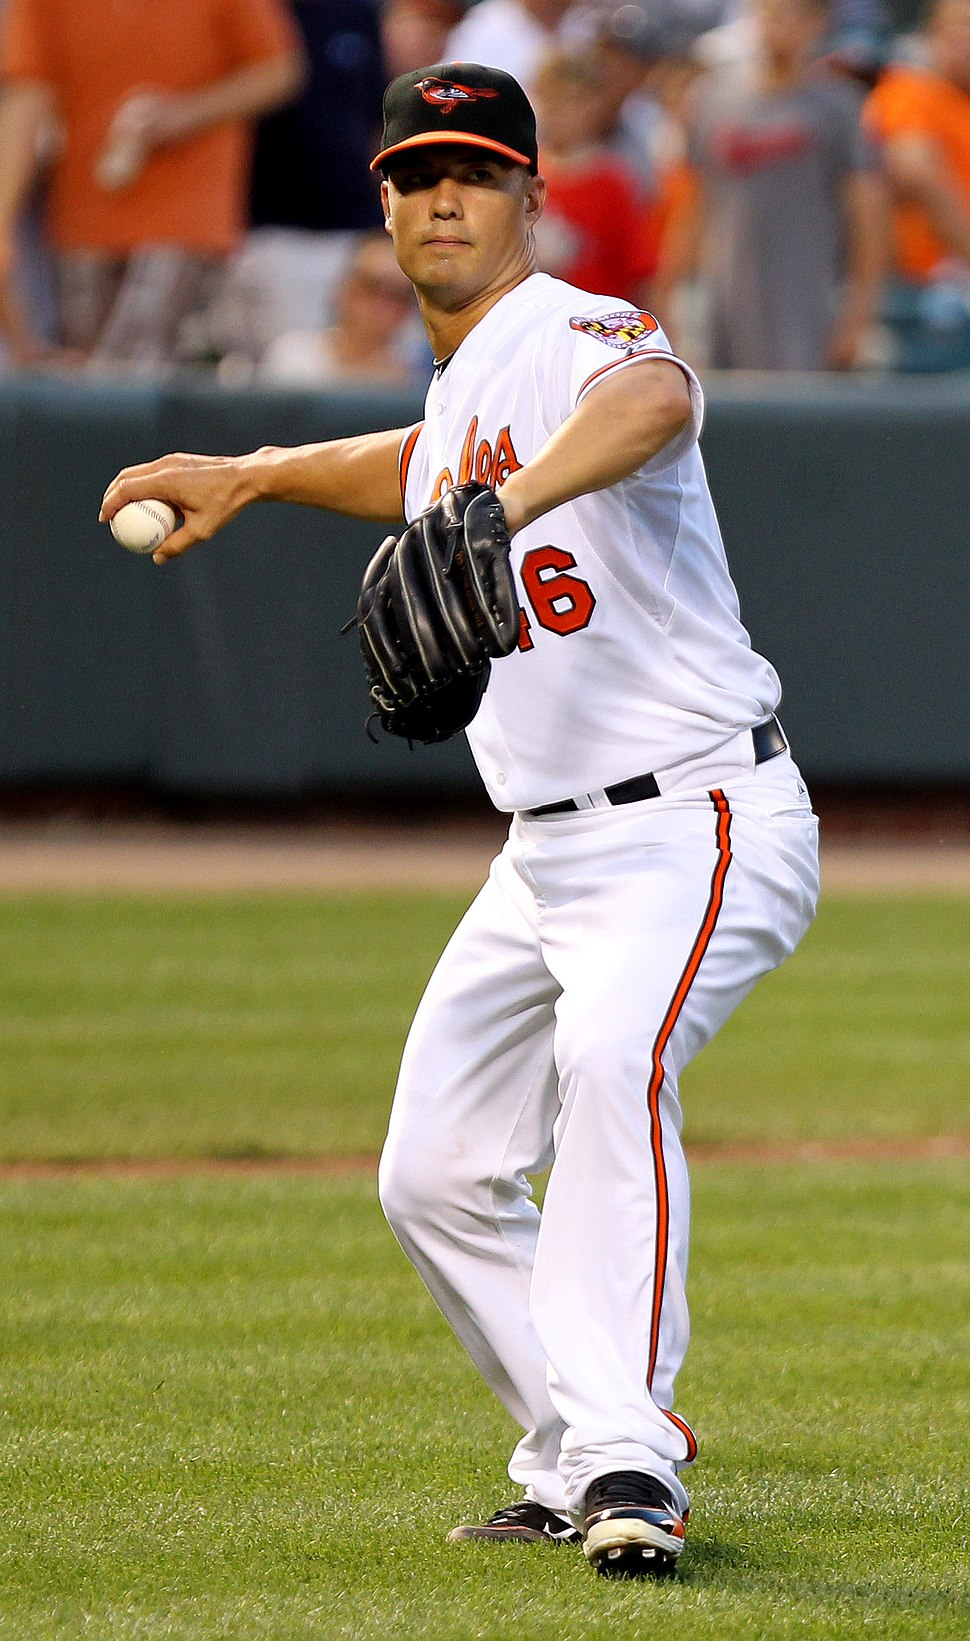 Jeremy Guthrie on August 8, 2011